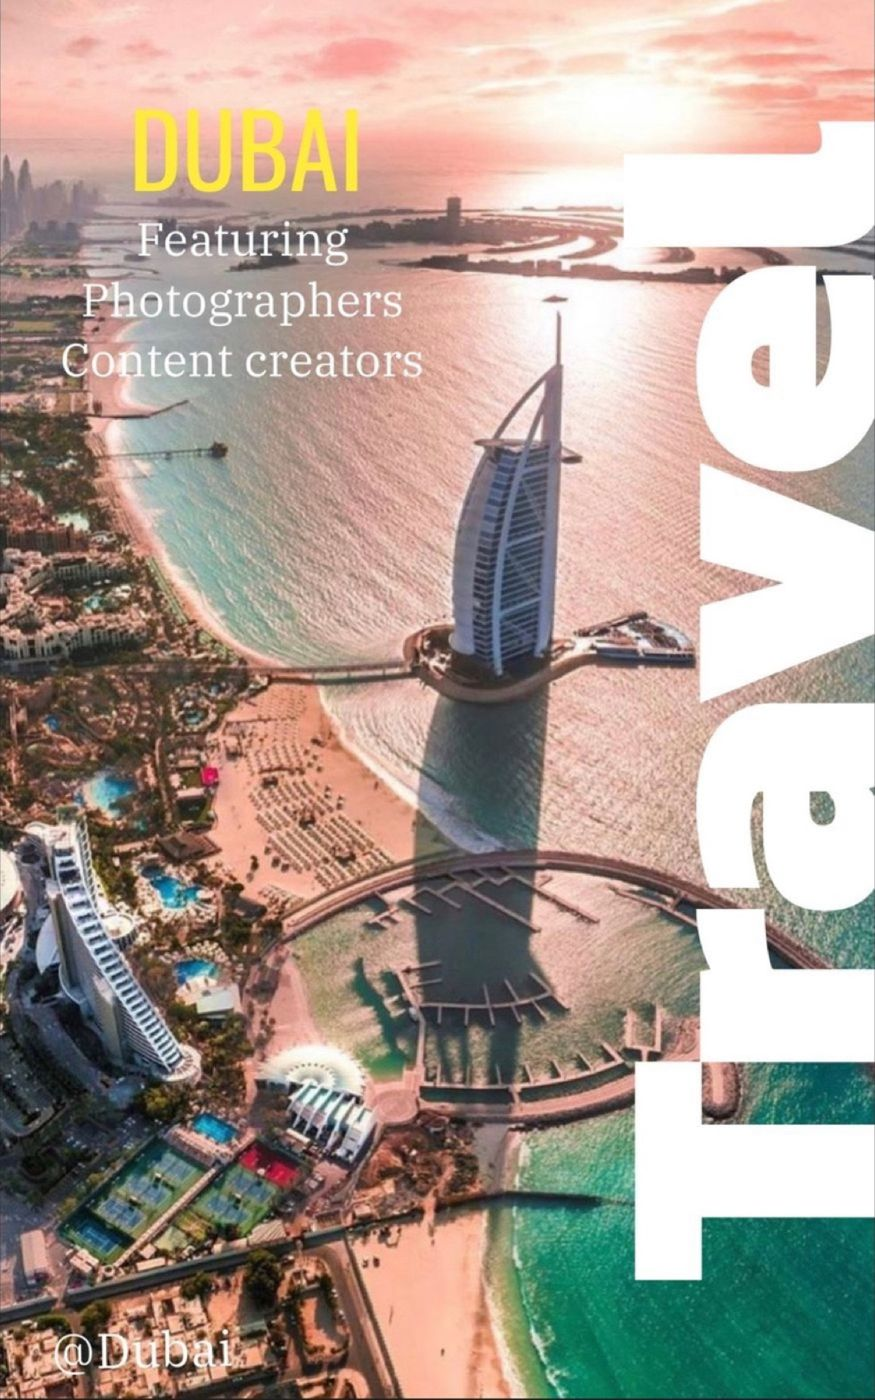 Featuring Content Creators and Photographers | Dubai